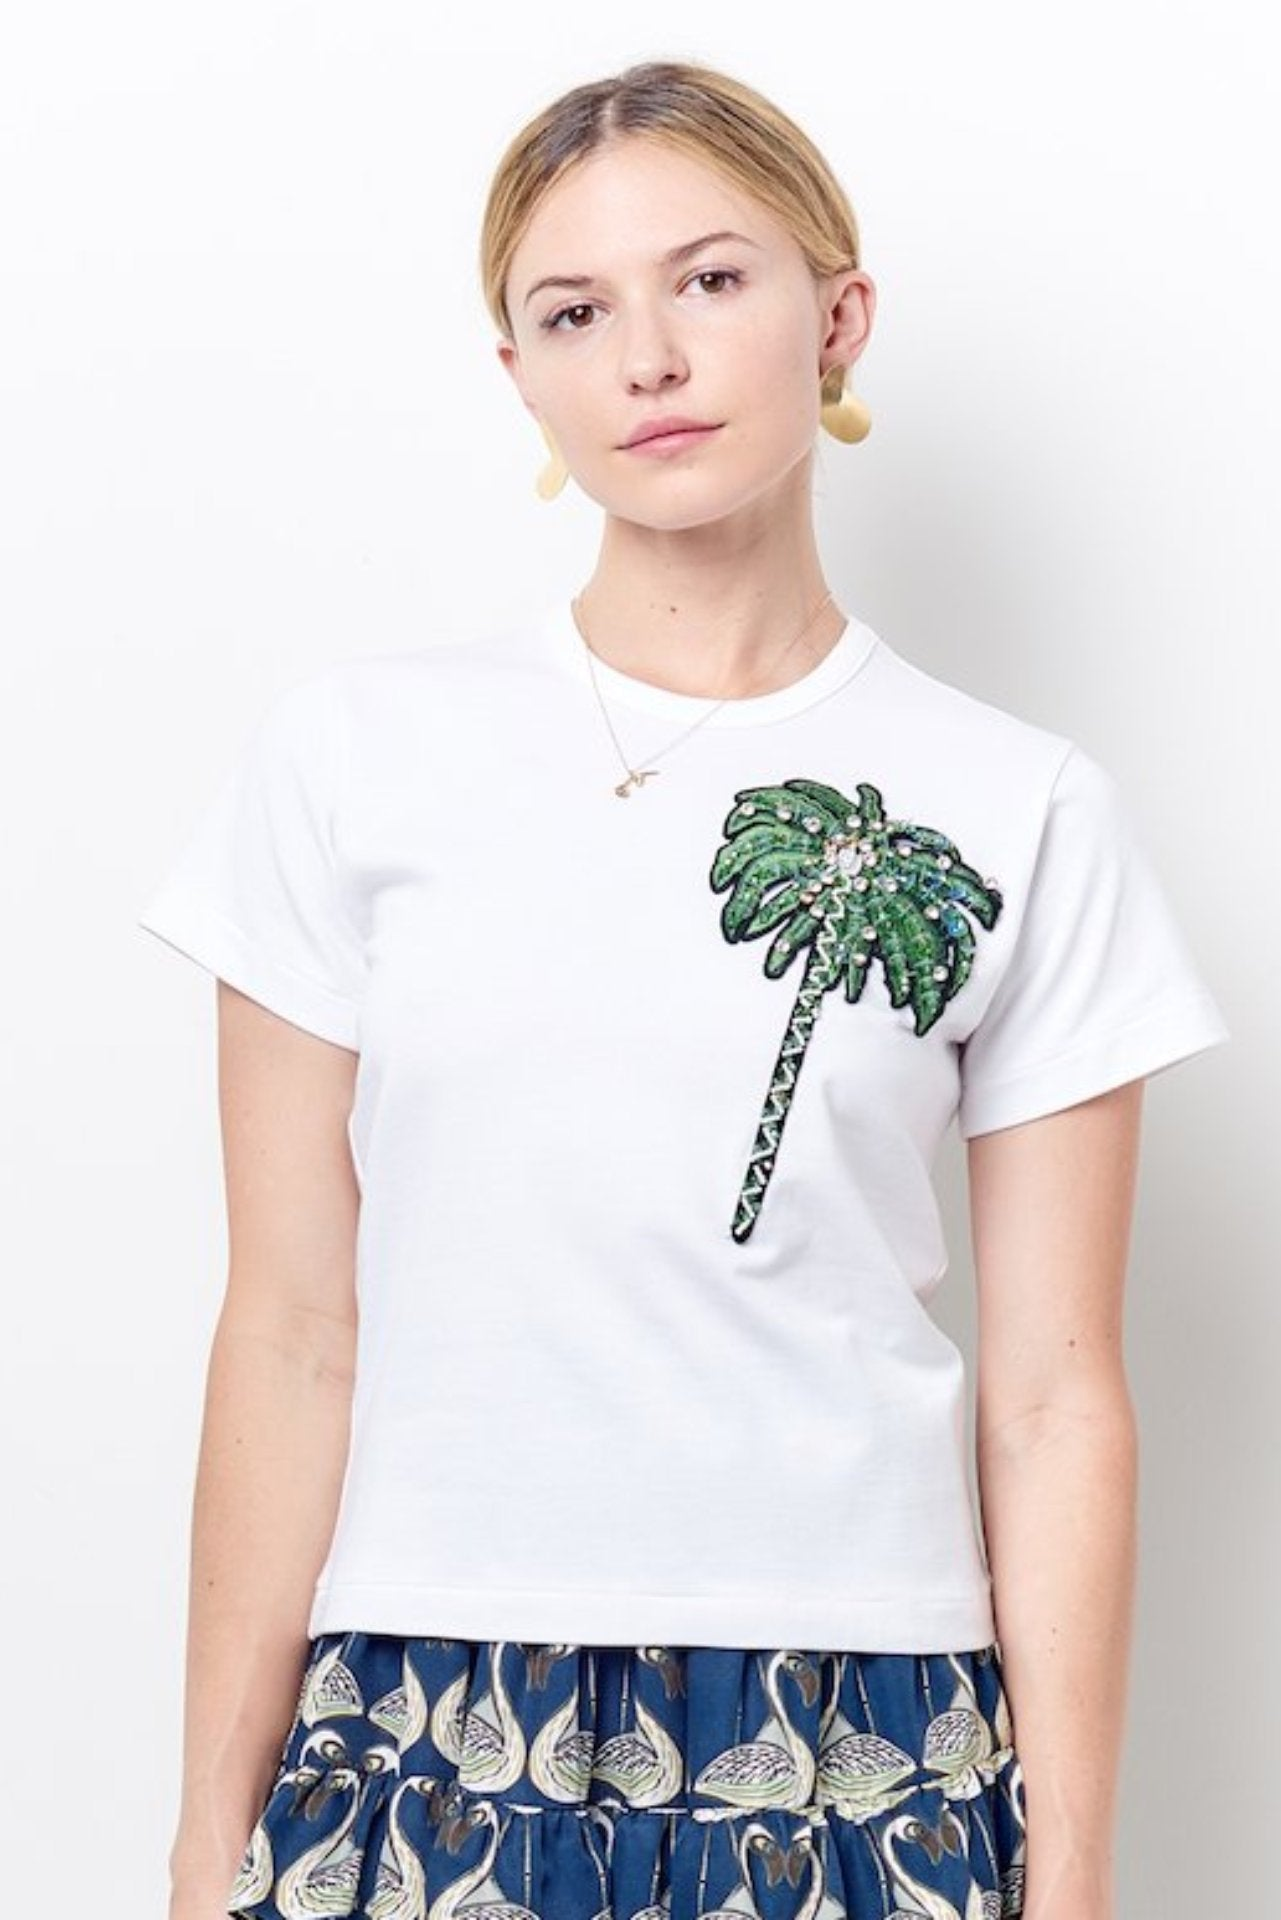 MOLLY Crew Neck Tee with Palm Tree